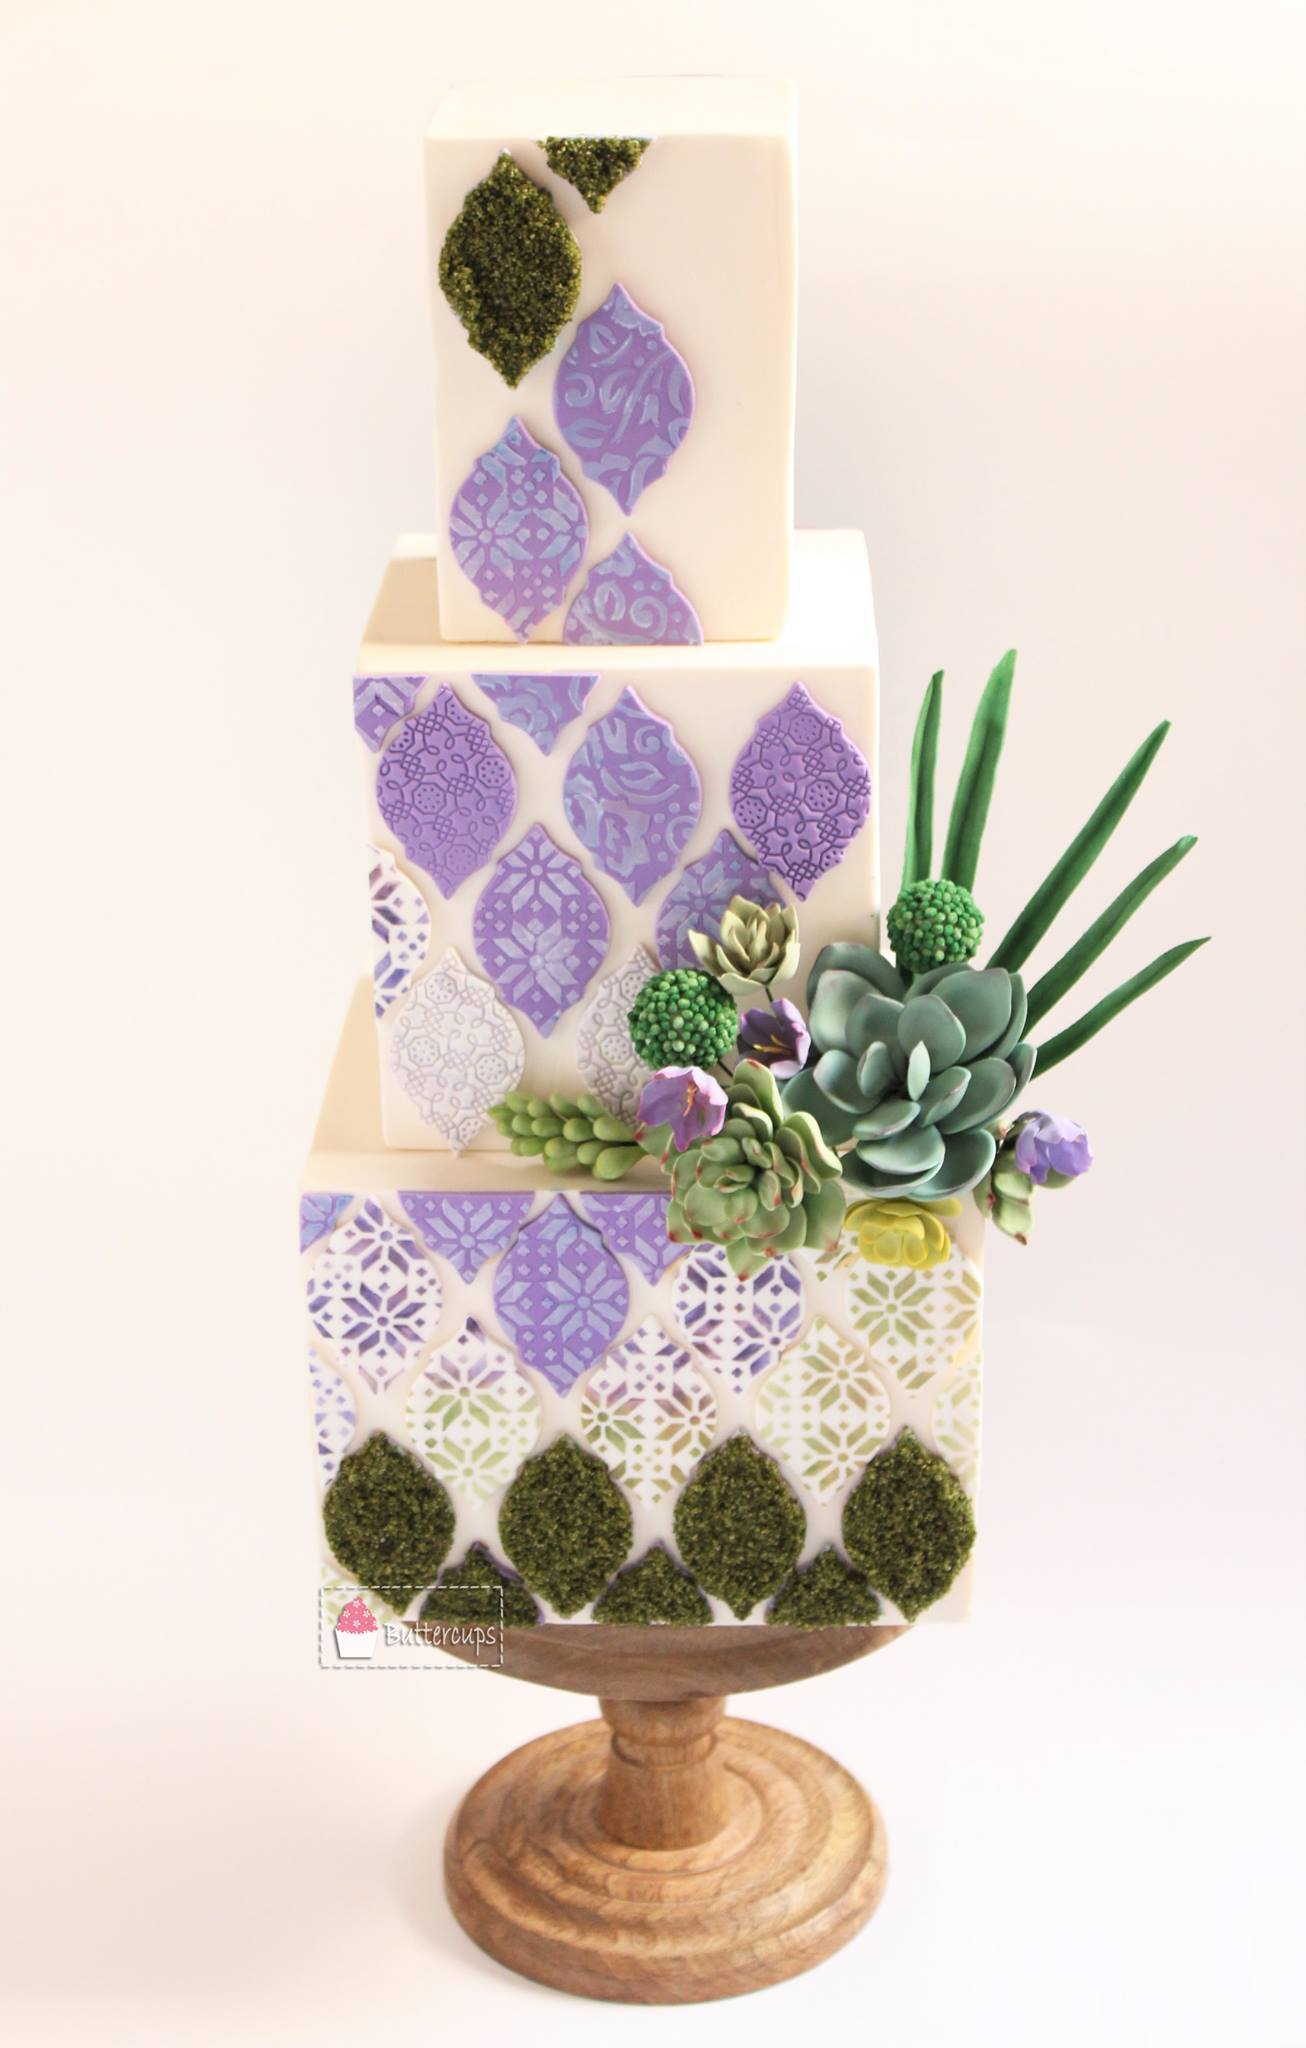 White fondant cake with moss effect and succulents